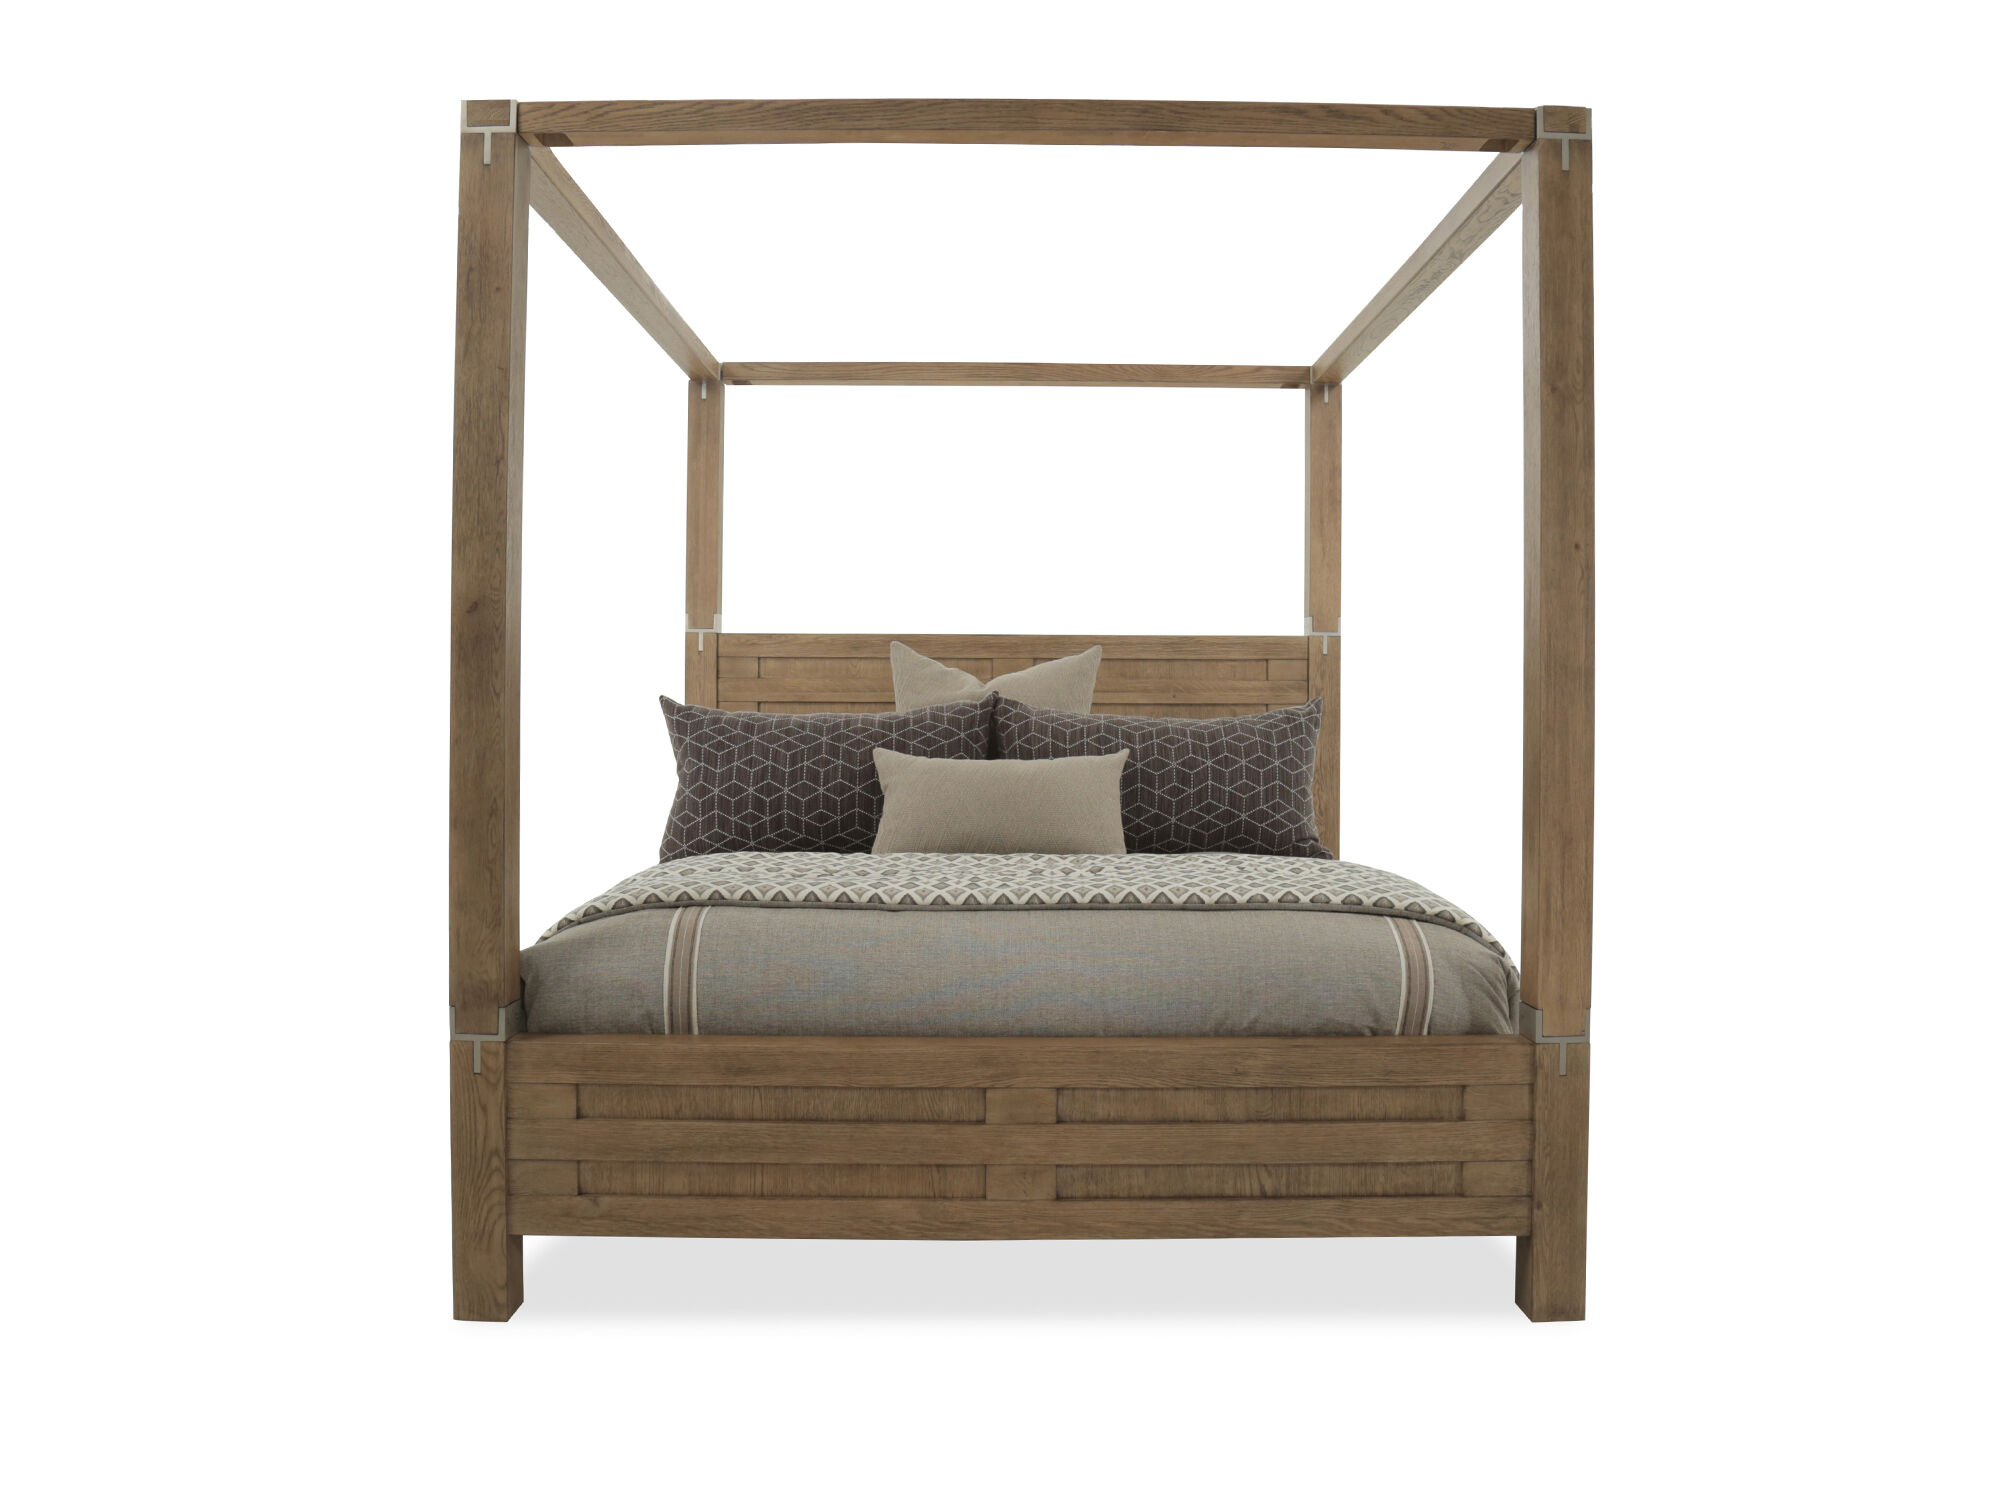 88u0026quot; Modern Interchangeable Panel to Canopy Bed in Rustic Oak 88u0026quot; Modern Interchangeable Panel to Canopy Bed in Rustic Oak  sc 1 st  Mathis Brothers & 88